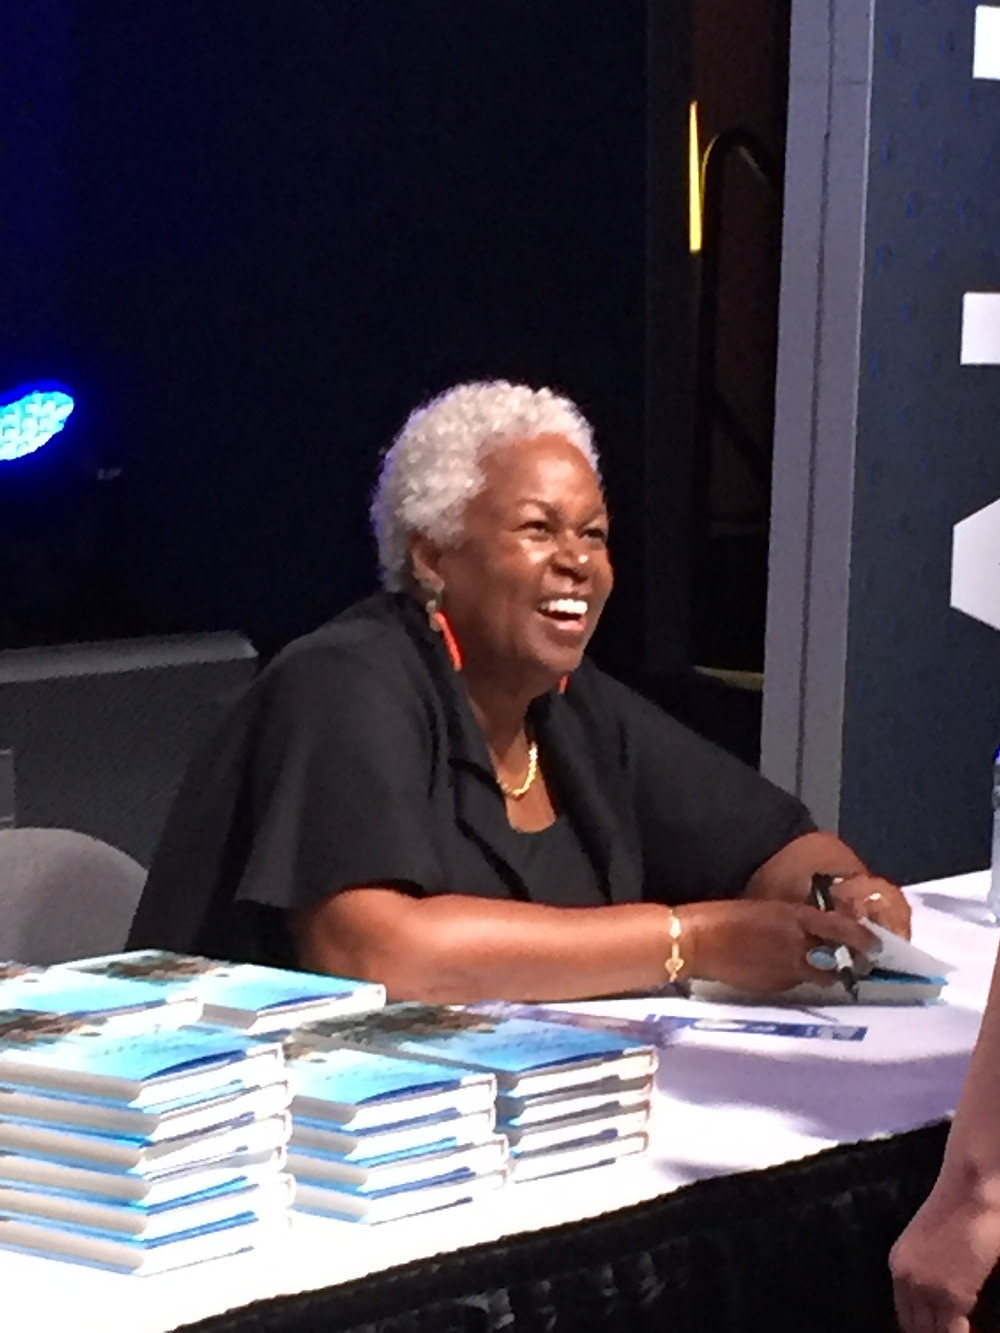 Sharon Robinson Greets fans and signs books.